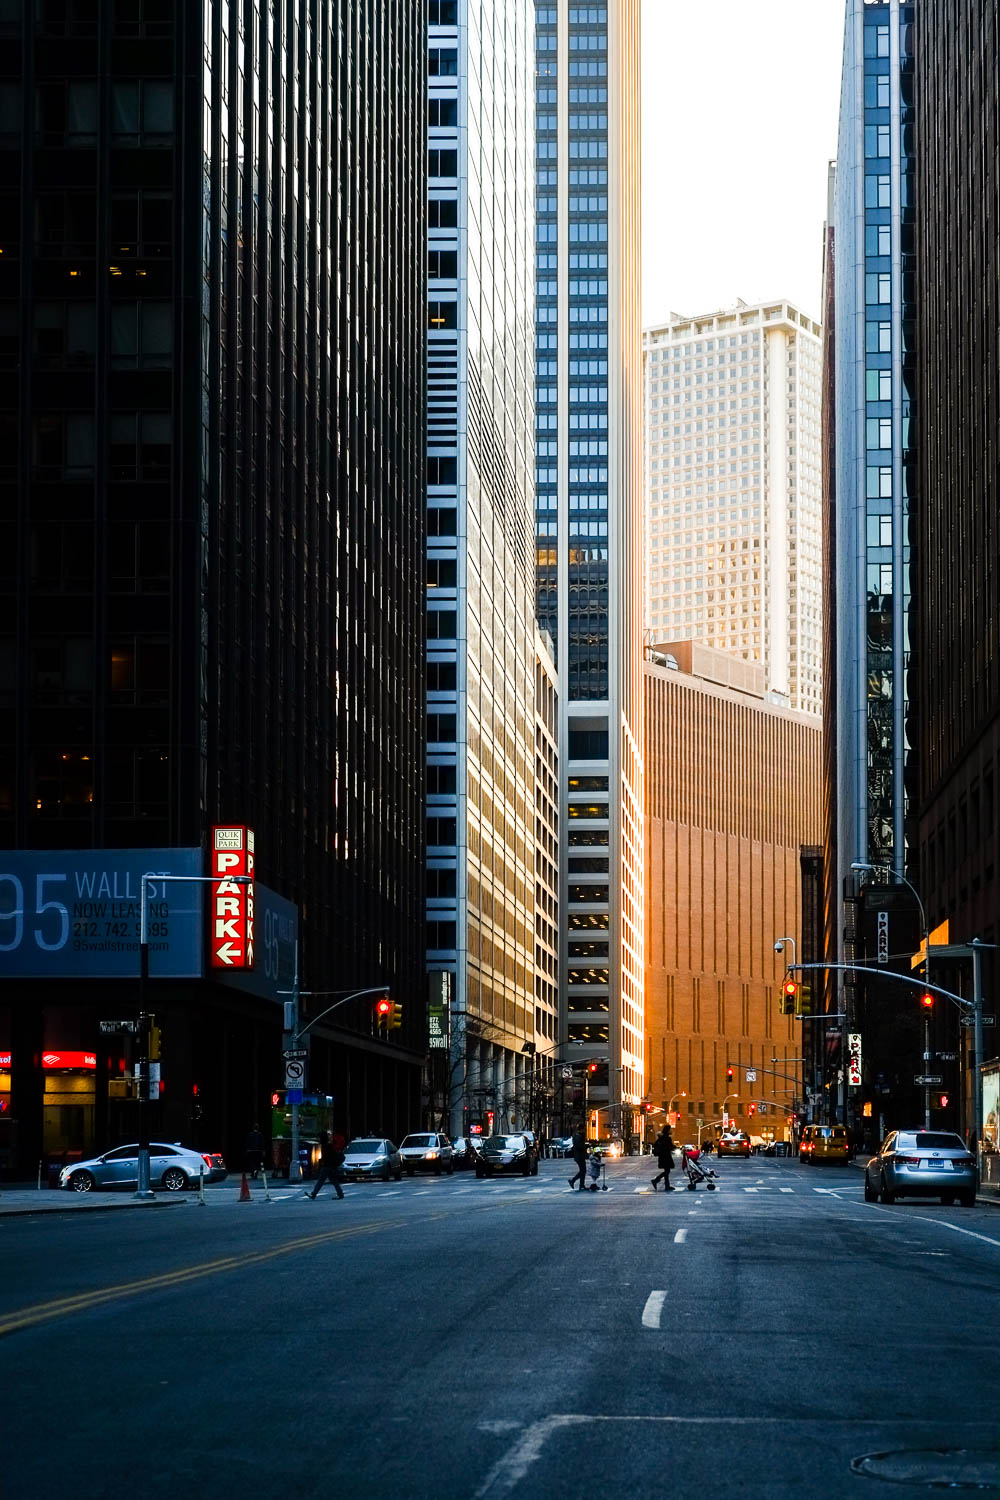 Water and Wall Street in Manhattan during a sunset. Fujifilm X-pro1, Fujinon 35mm f/1.4. 1/125 @ f/4 ISO 200